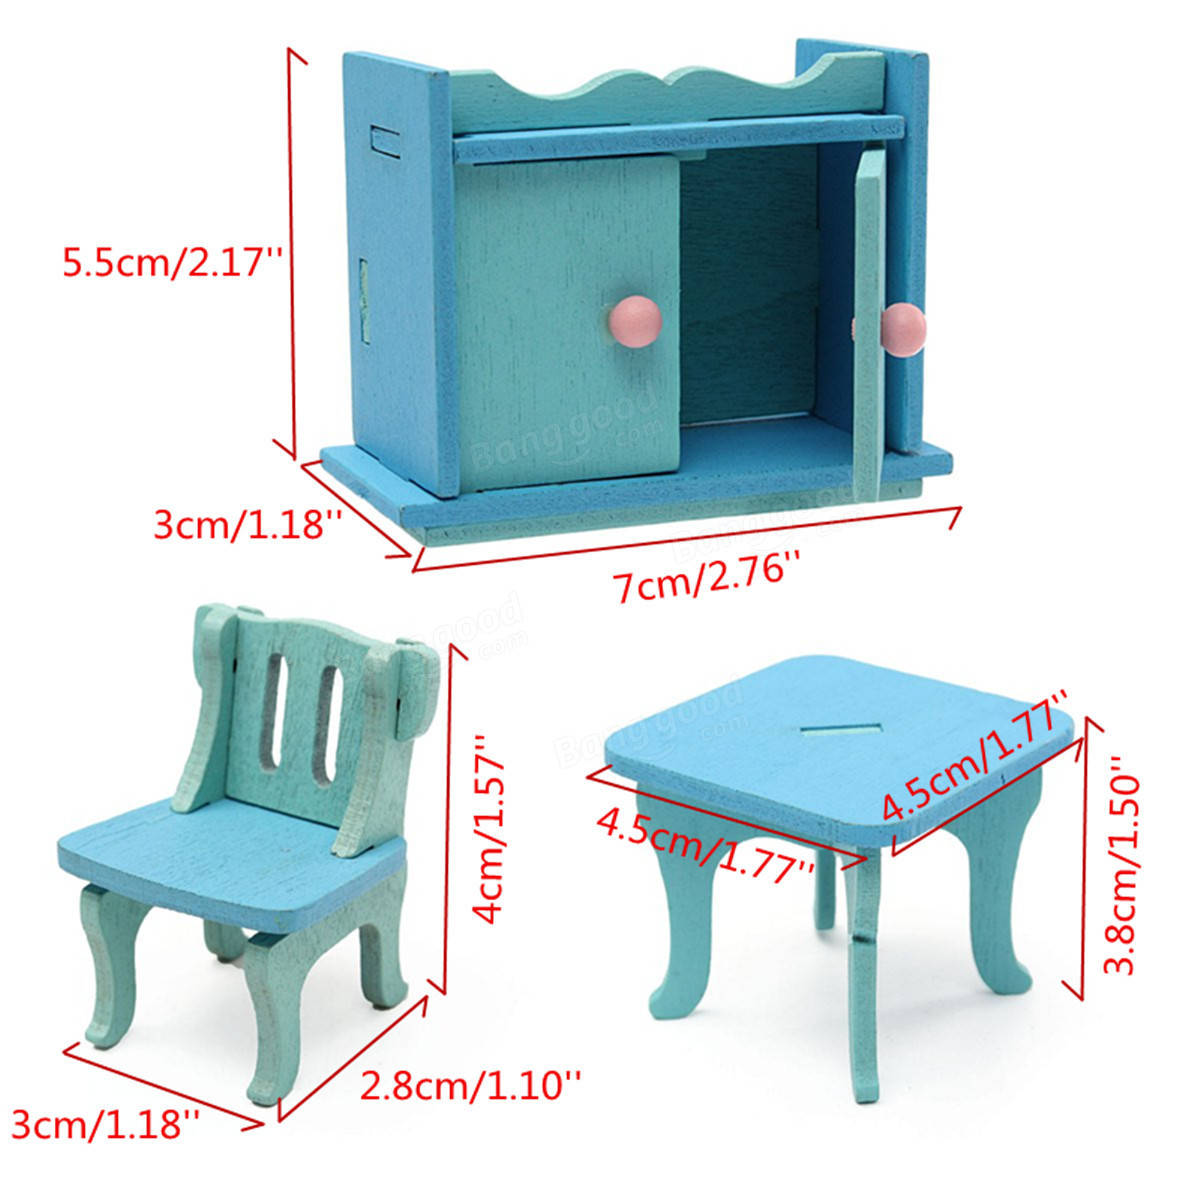 Wooden dollhouse step foot stool wood footstool stepstool furniture - Wooden Dollhouse Furniture Doll House Miniature Dinning Room Set Kids Role Play Toy Kit